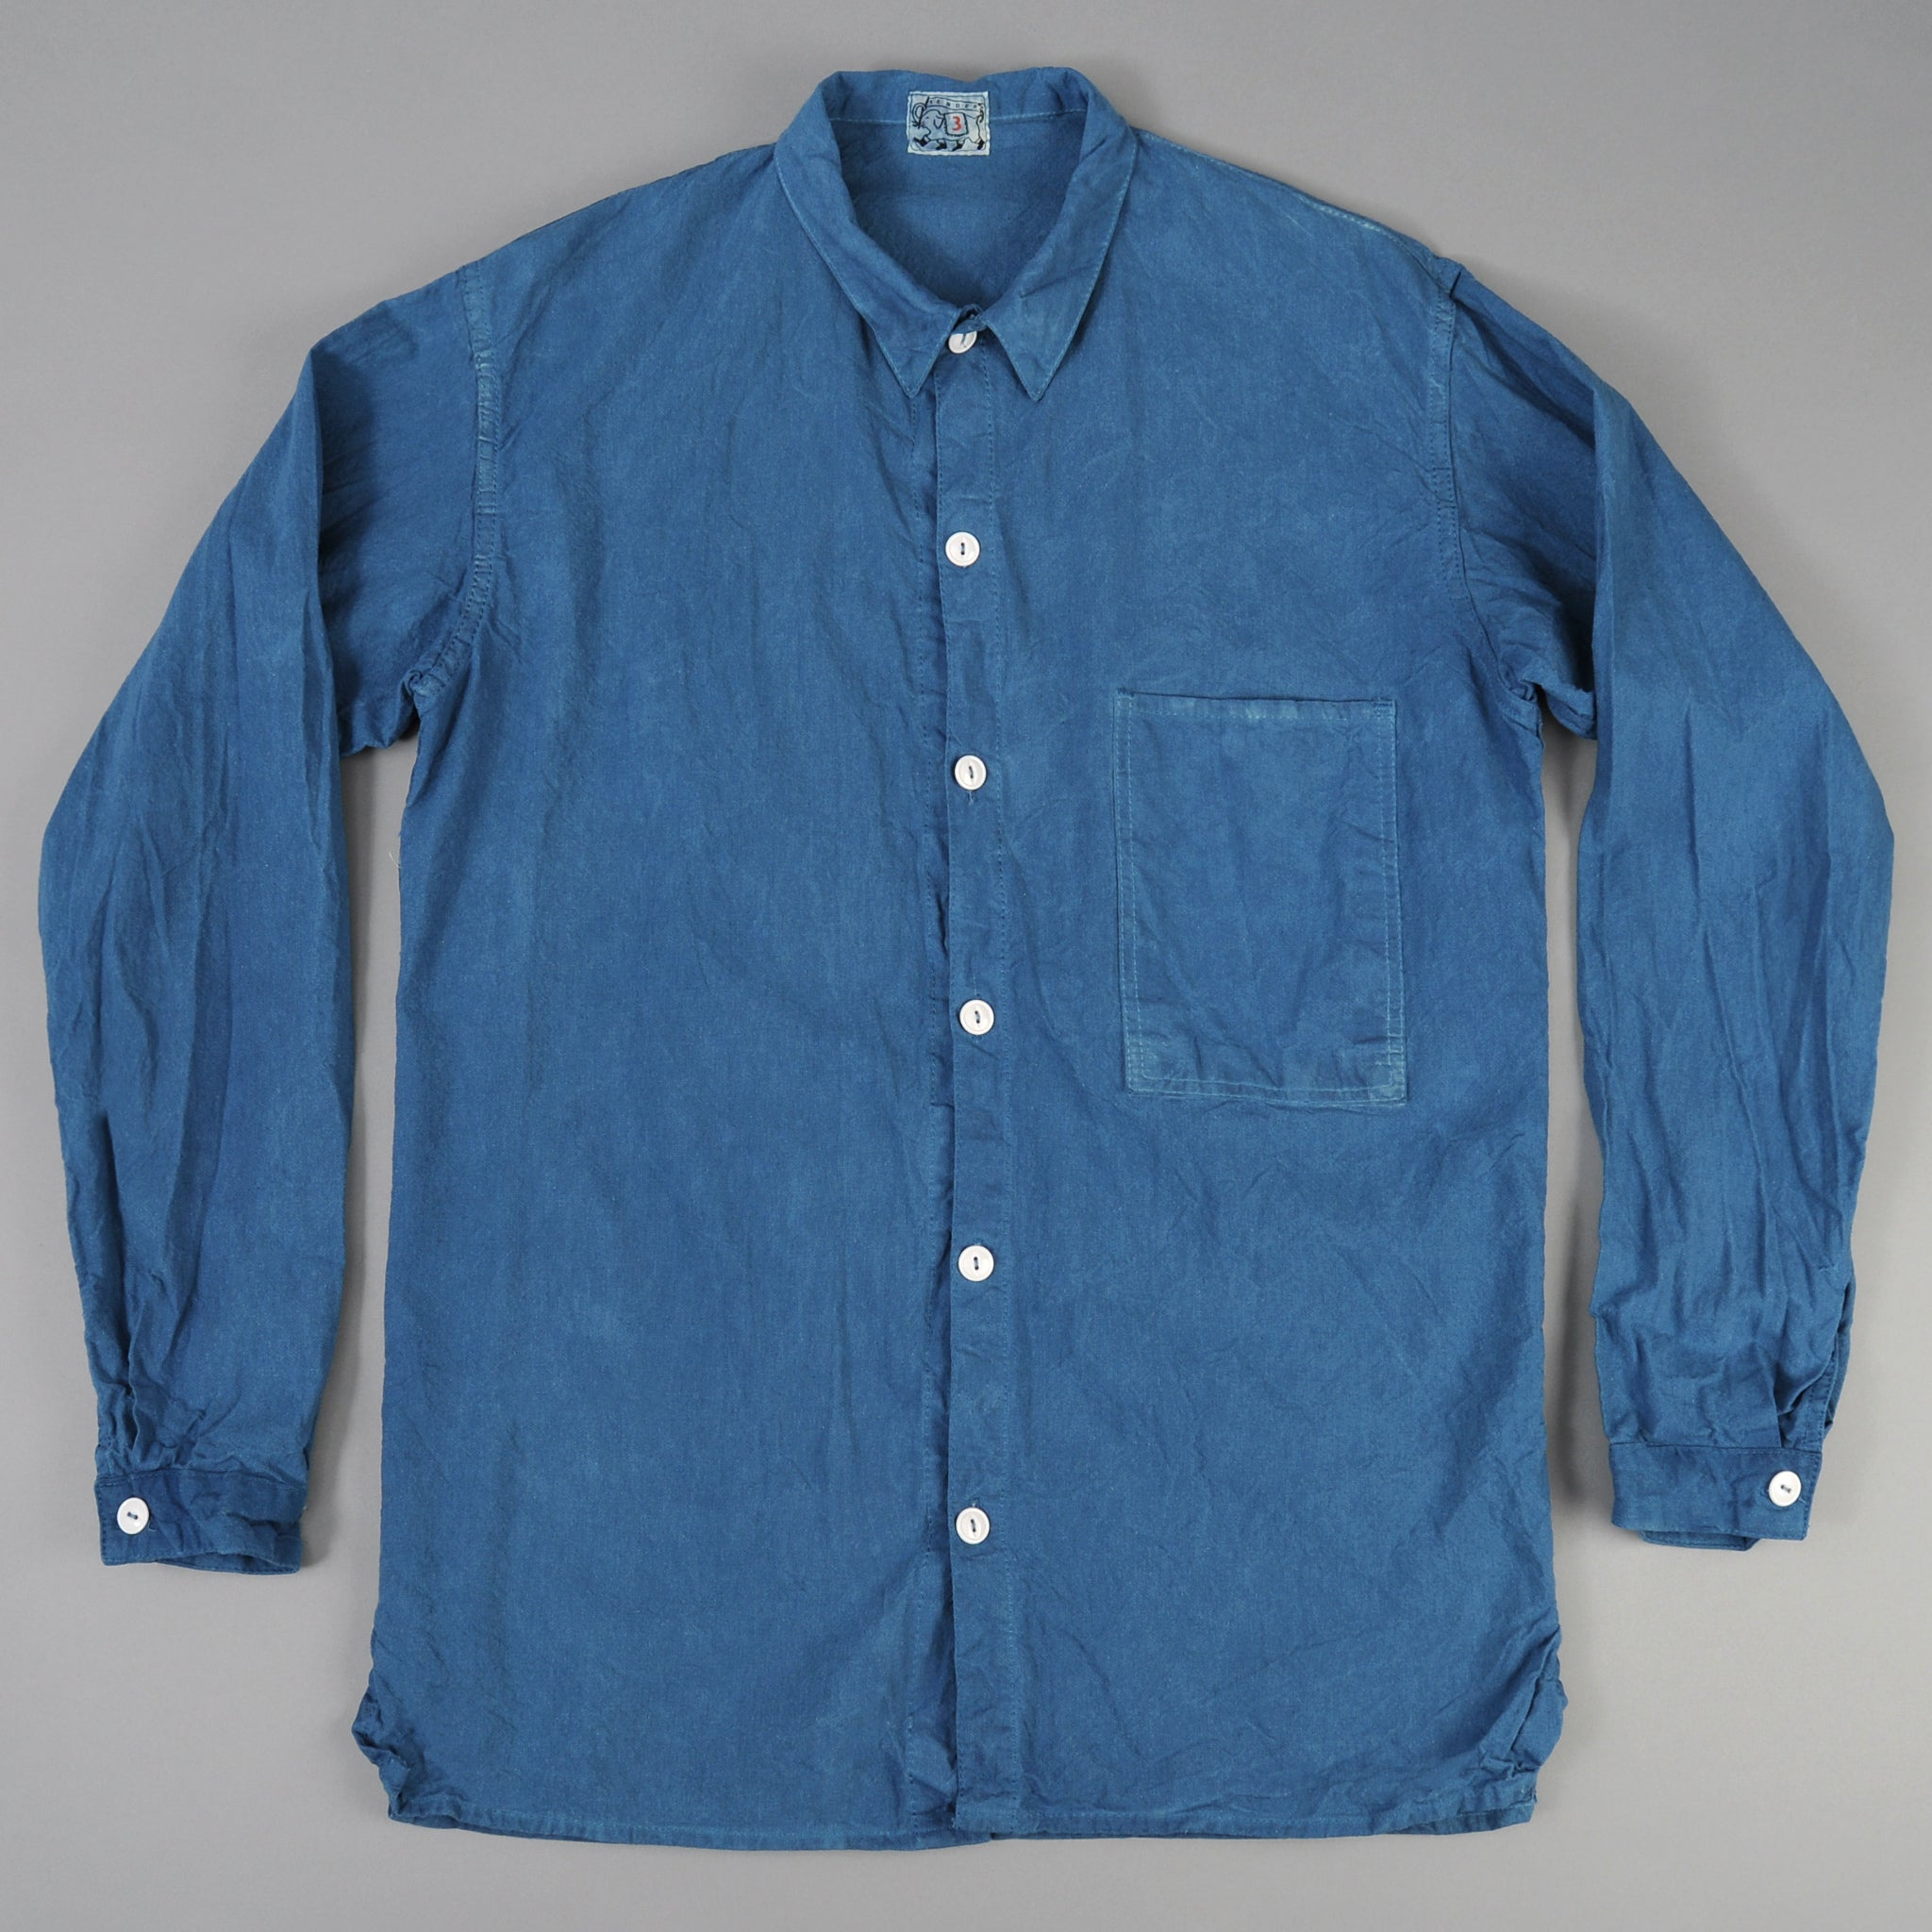 Tender Co. - Square Tail Long Sleeve Shirt, Woad Calico - image 1